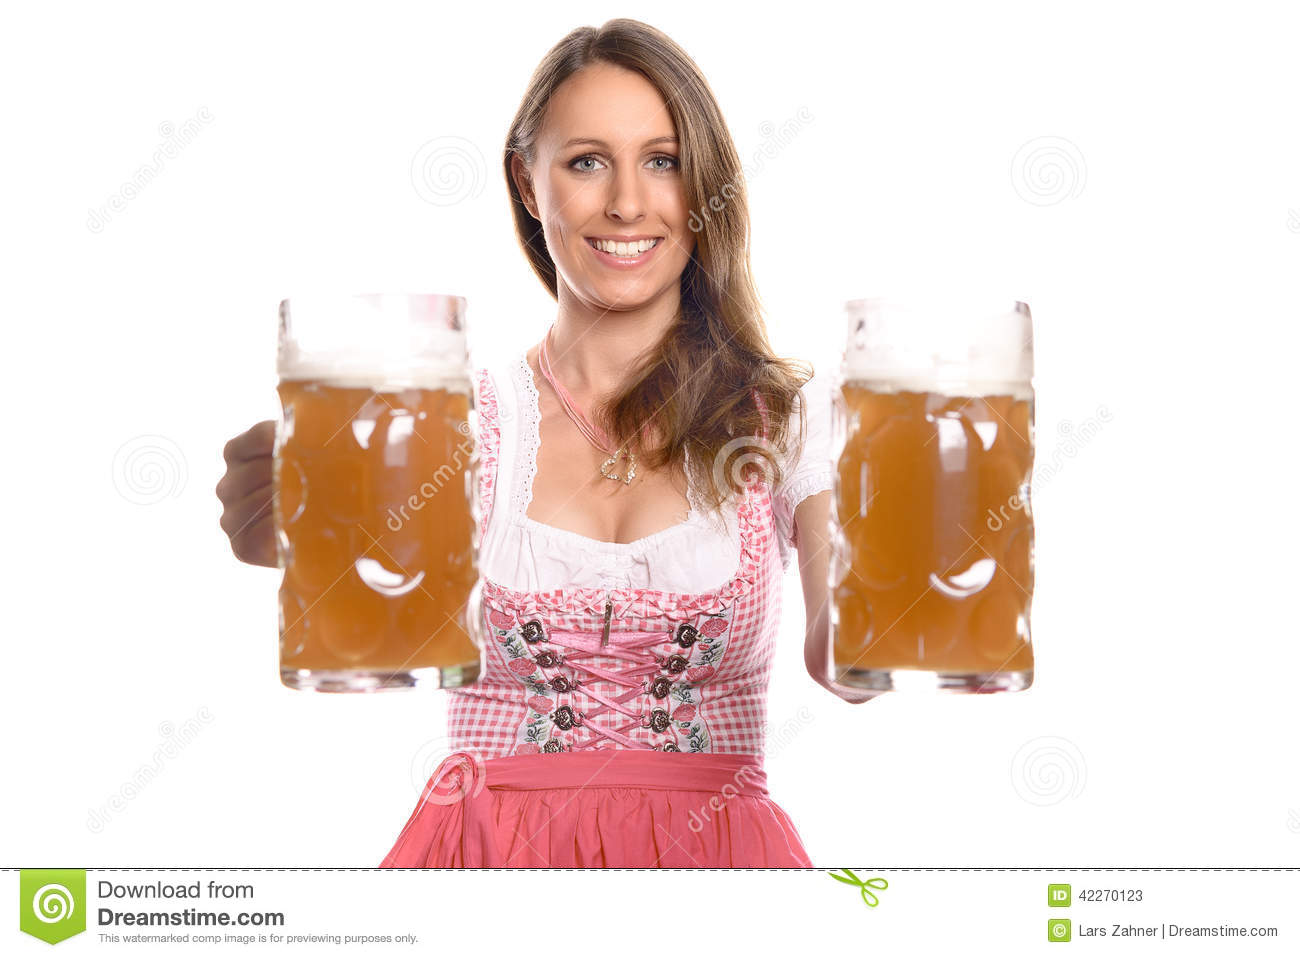 German or Bavarian waitress with her hair in pigtails wearing a ...